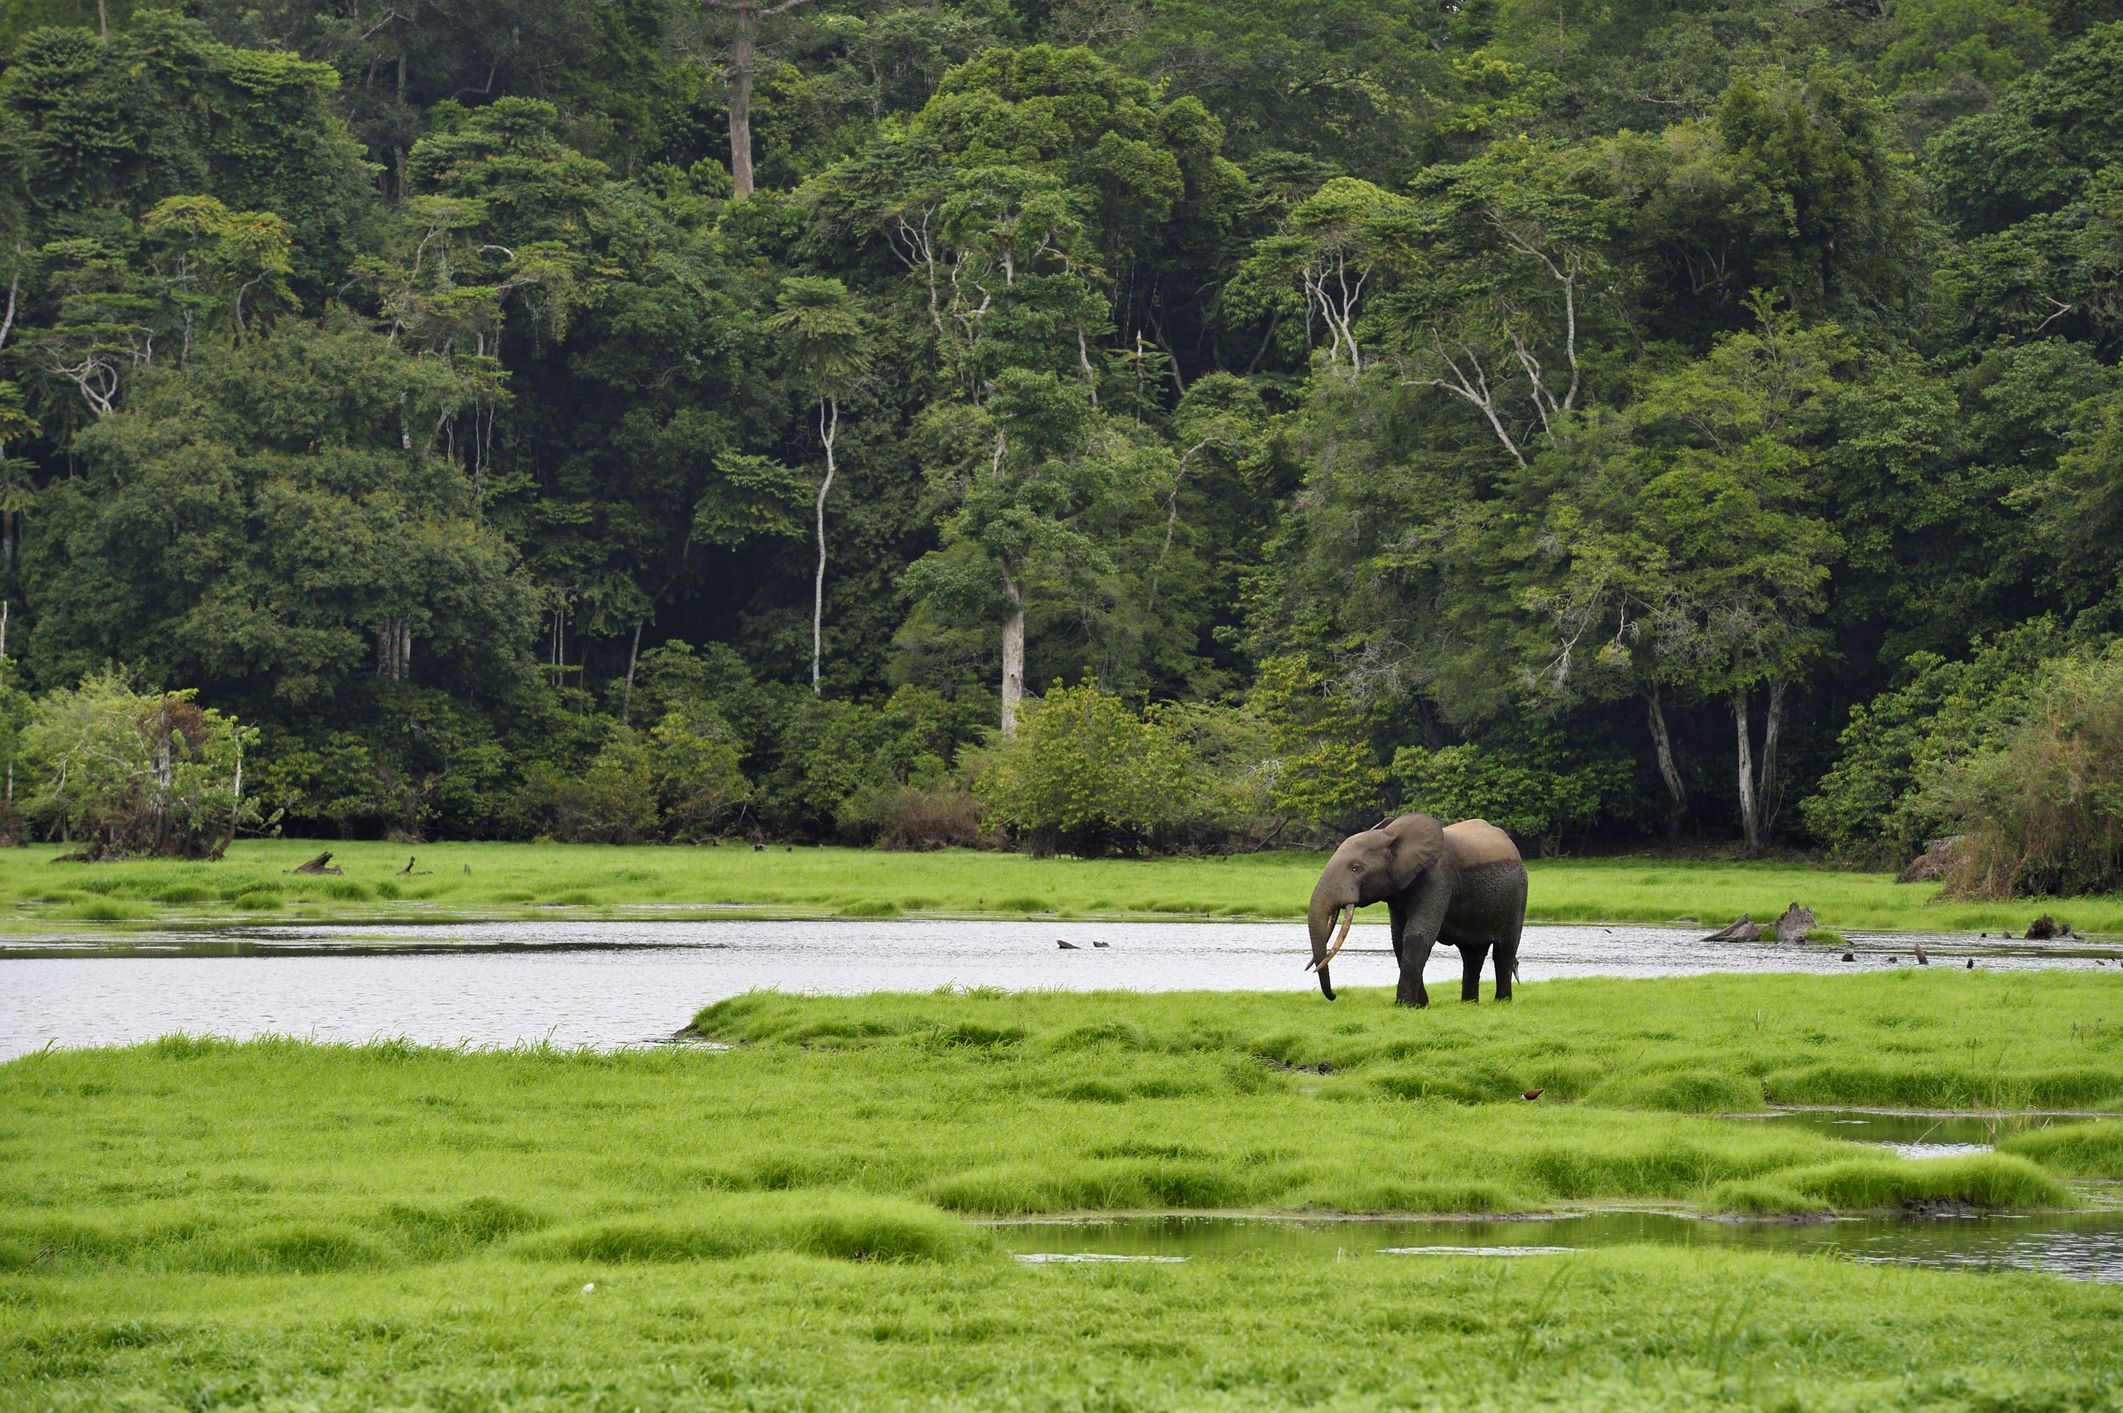 Gabon Travel Guide: Essential Facts and Information